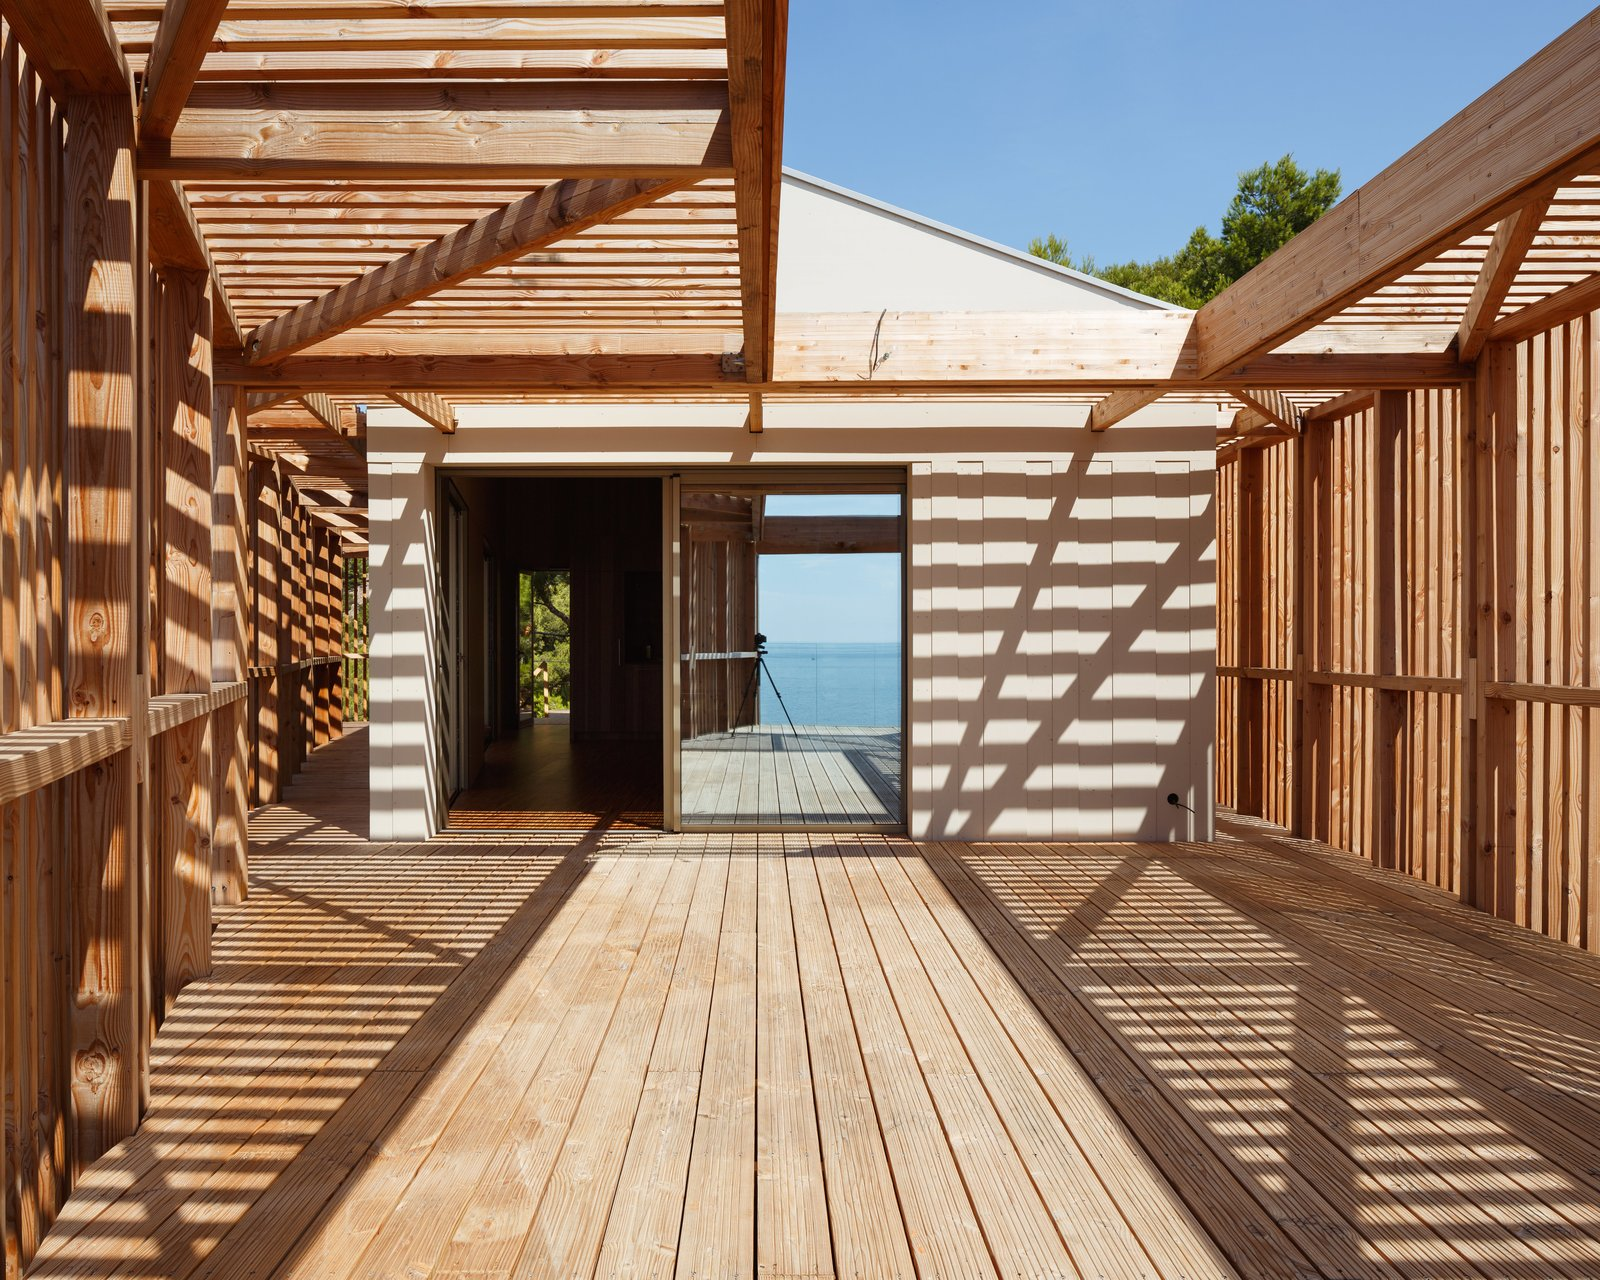 Tagged: Outdoor, Back Yard, Wood Patio, Porch, Deck, and Wood Fence. The KGET in Marseille by Pierre-vincent Debatte